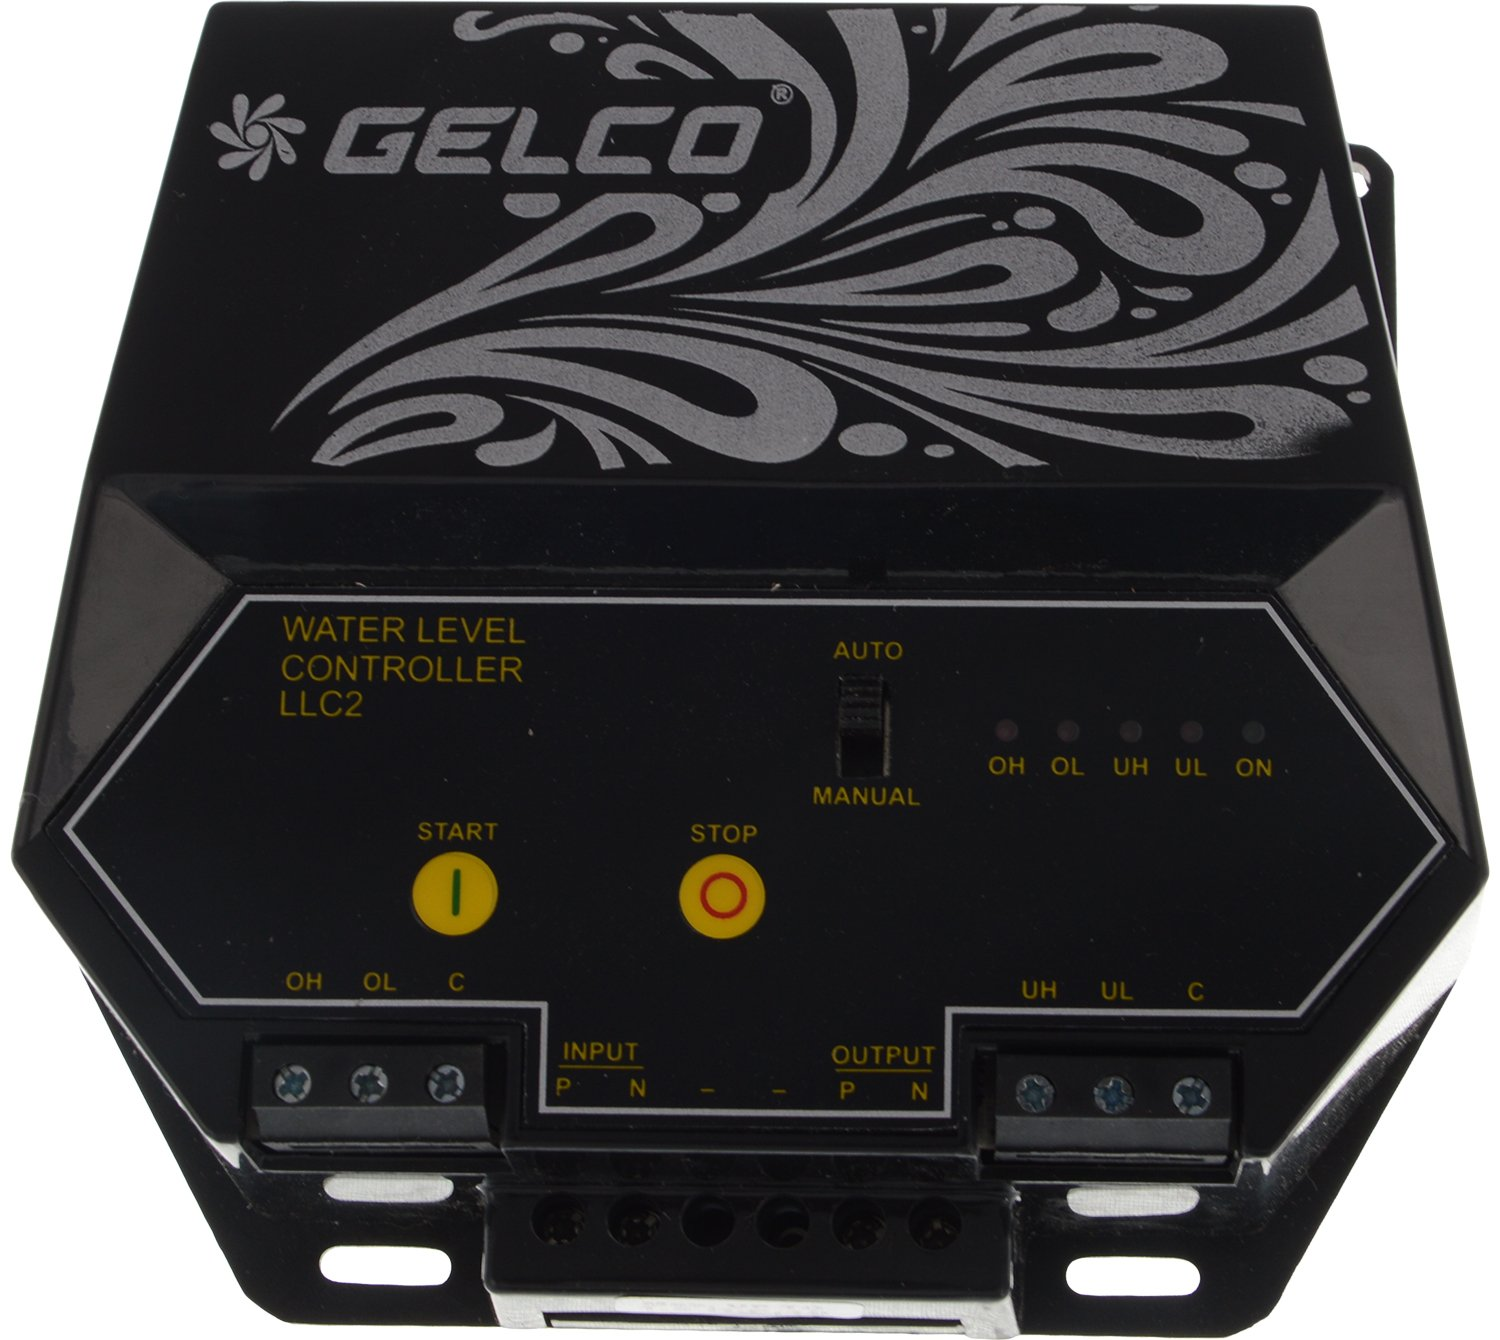 71E5b3252mL._SL1500_ buy gelco llc 2 plastic 230 volts water level controller (black ellico water level controller wiring diagram at fashall.co